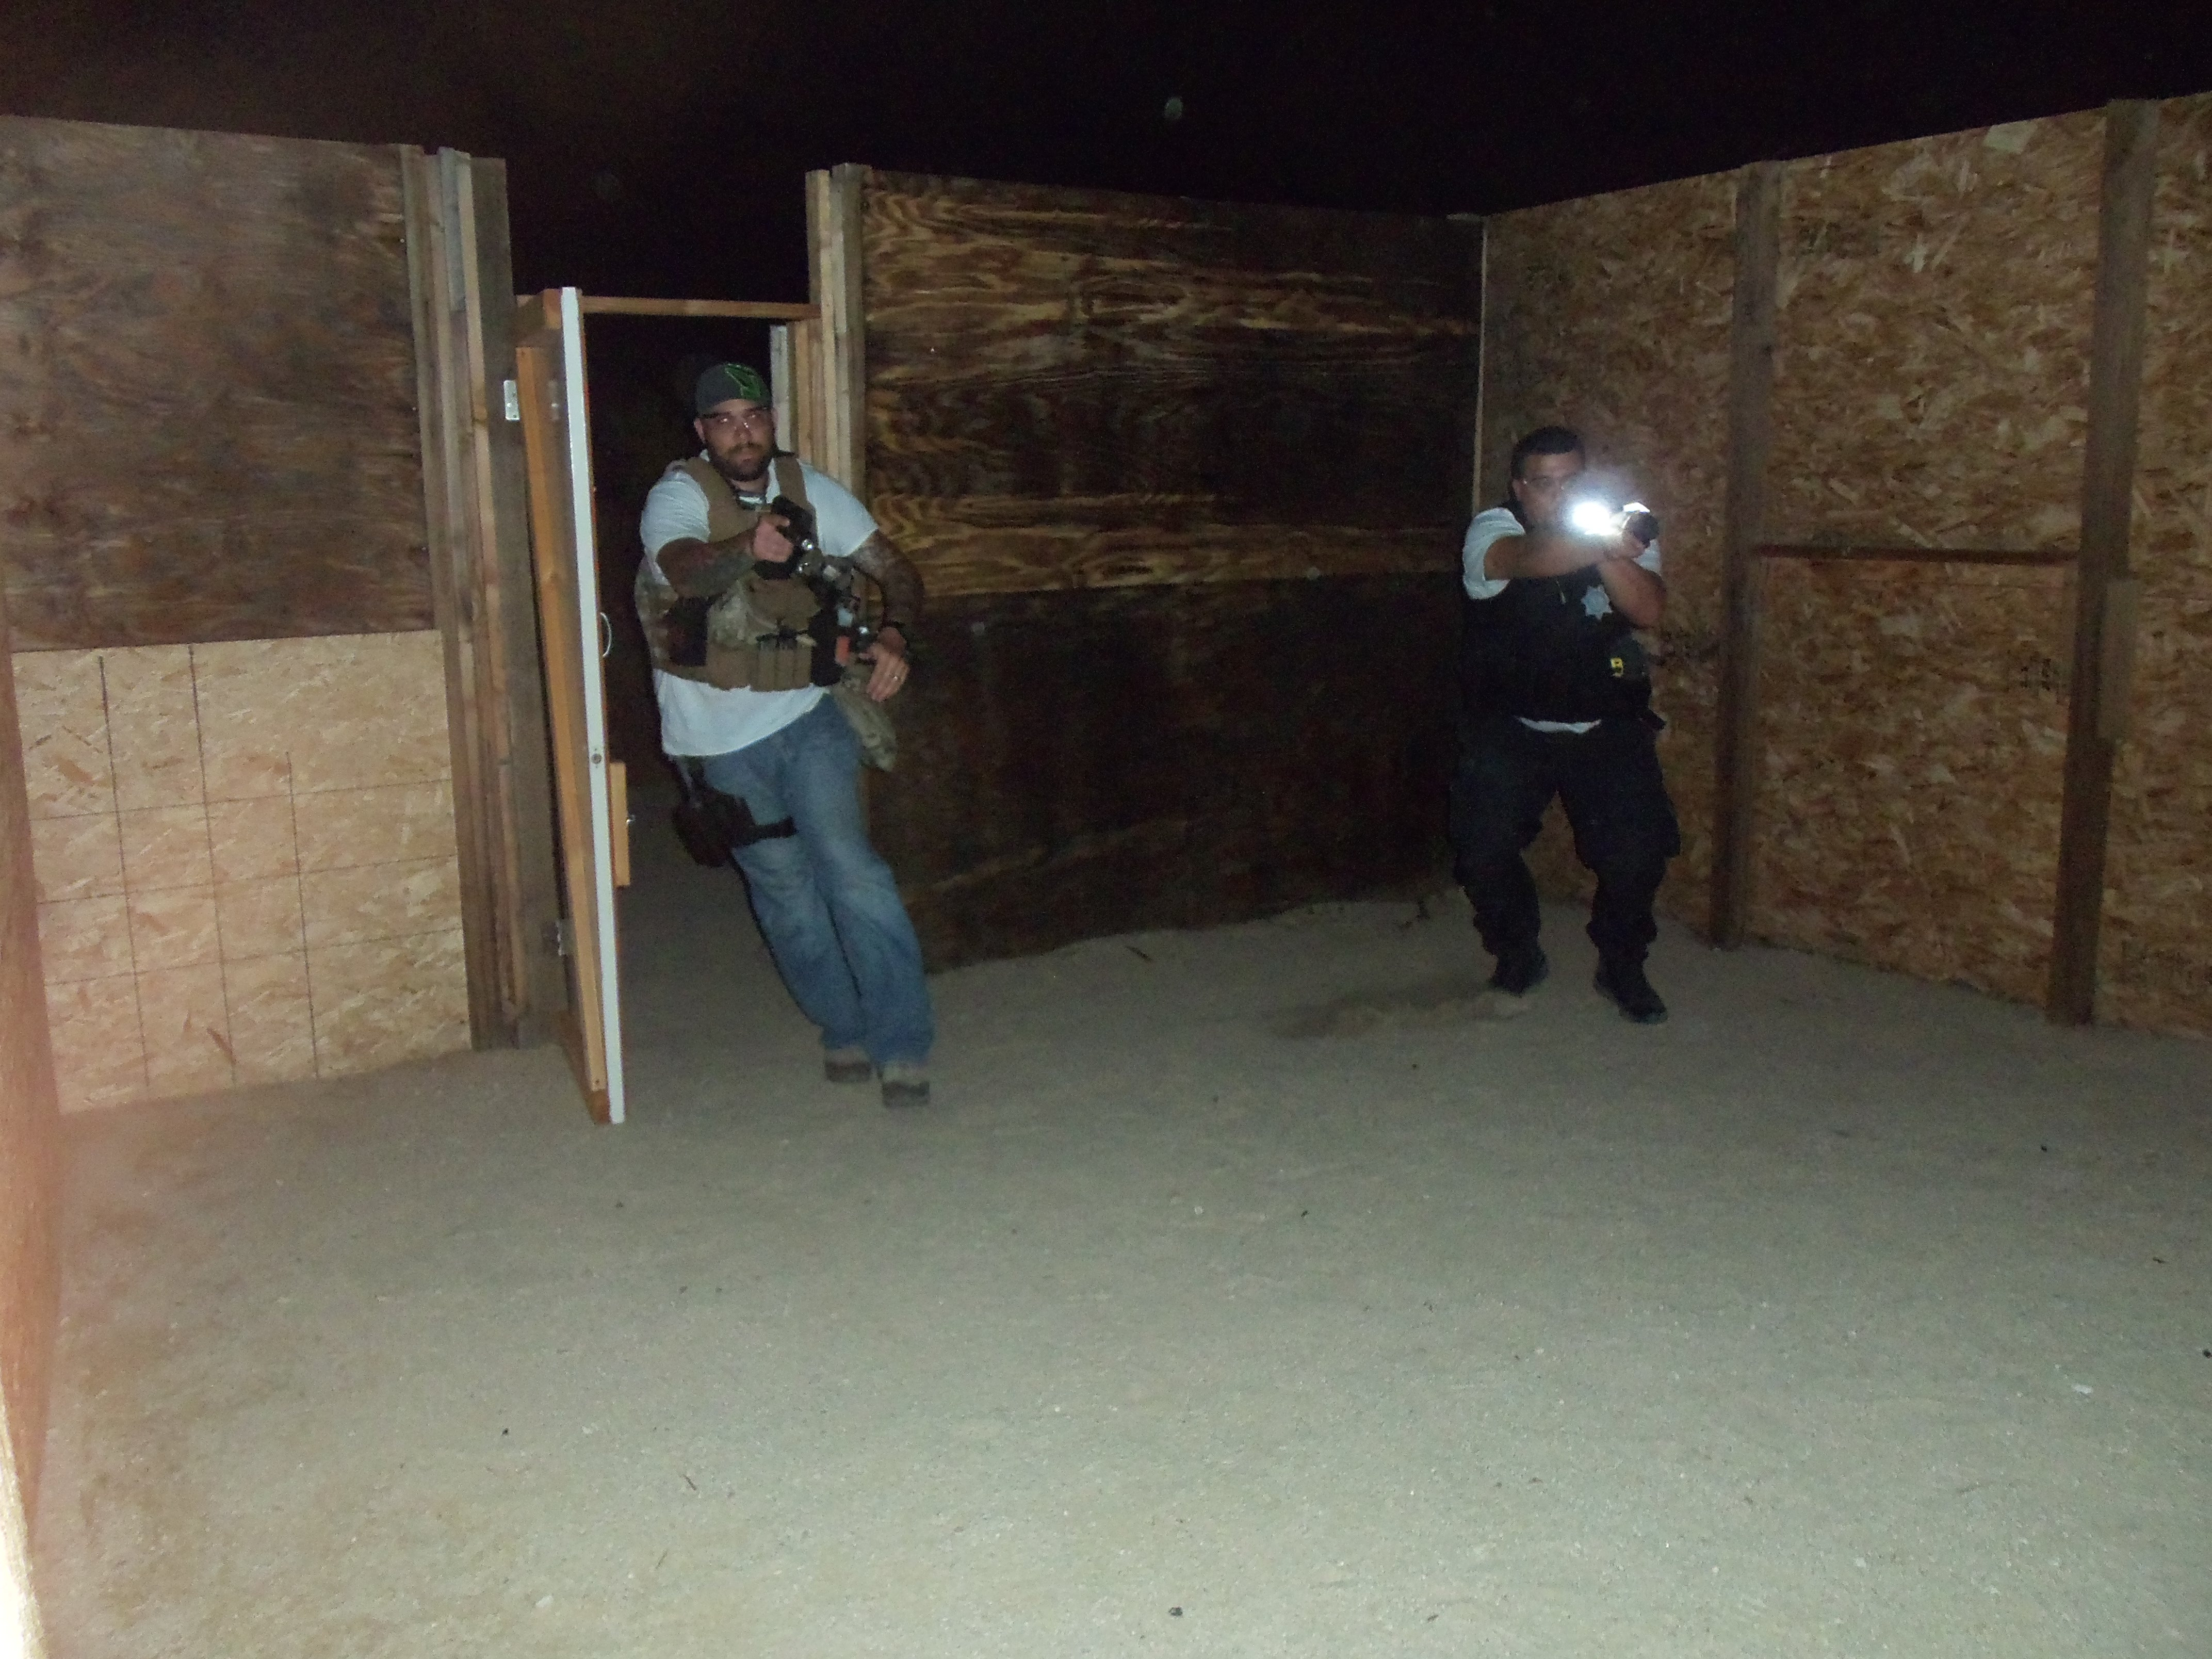 High-Risk Warrant Service Operations